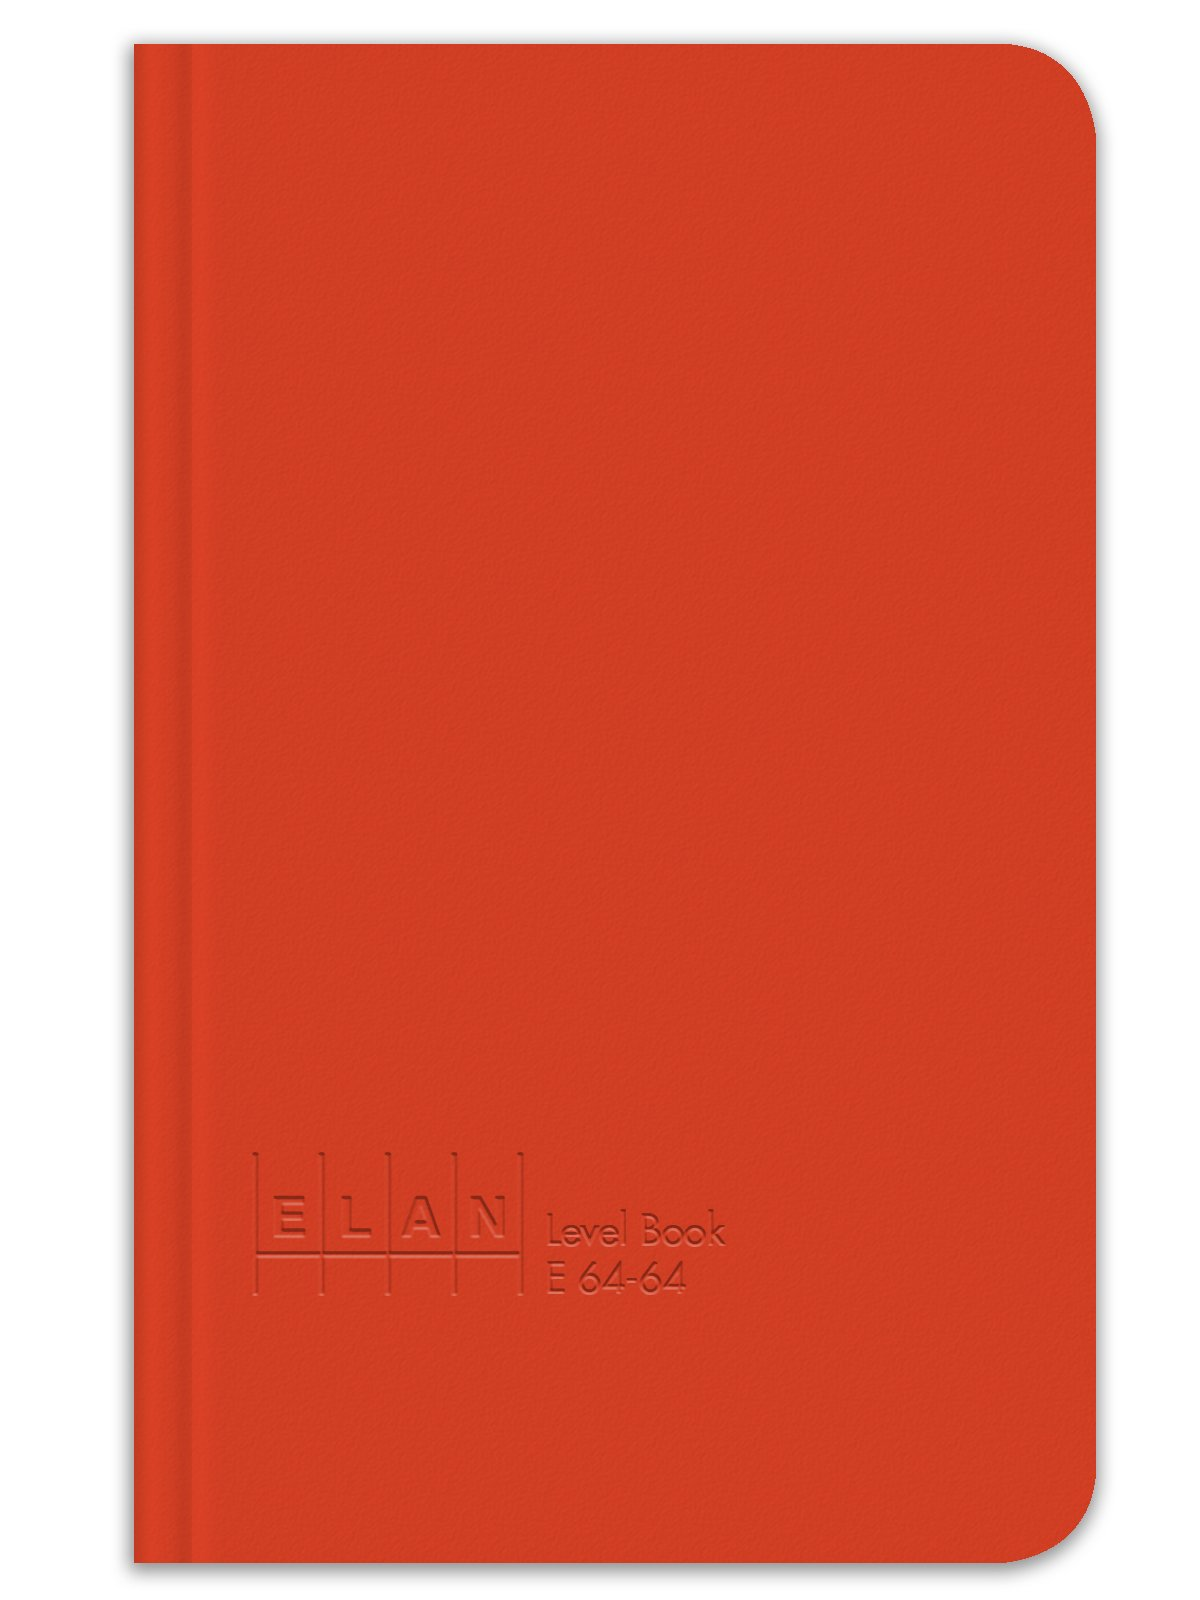 Elan Publishing Company E64-64 Level Book 4 ⅝ x 7 ¼, Bright Orange Cover (Pack of 48)